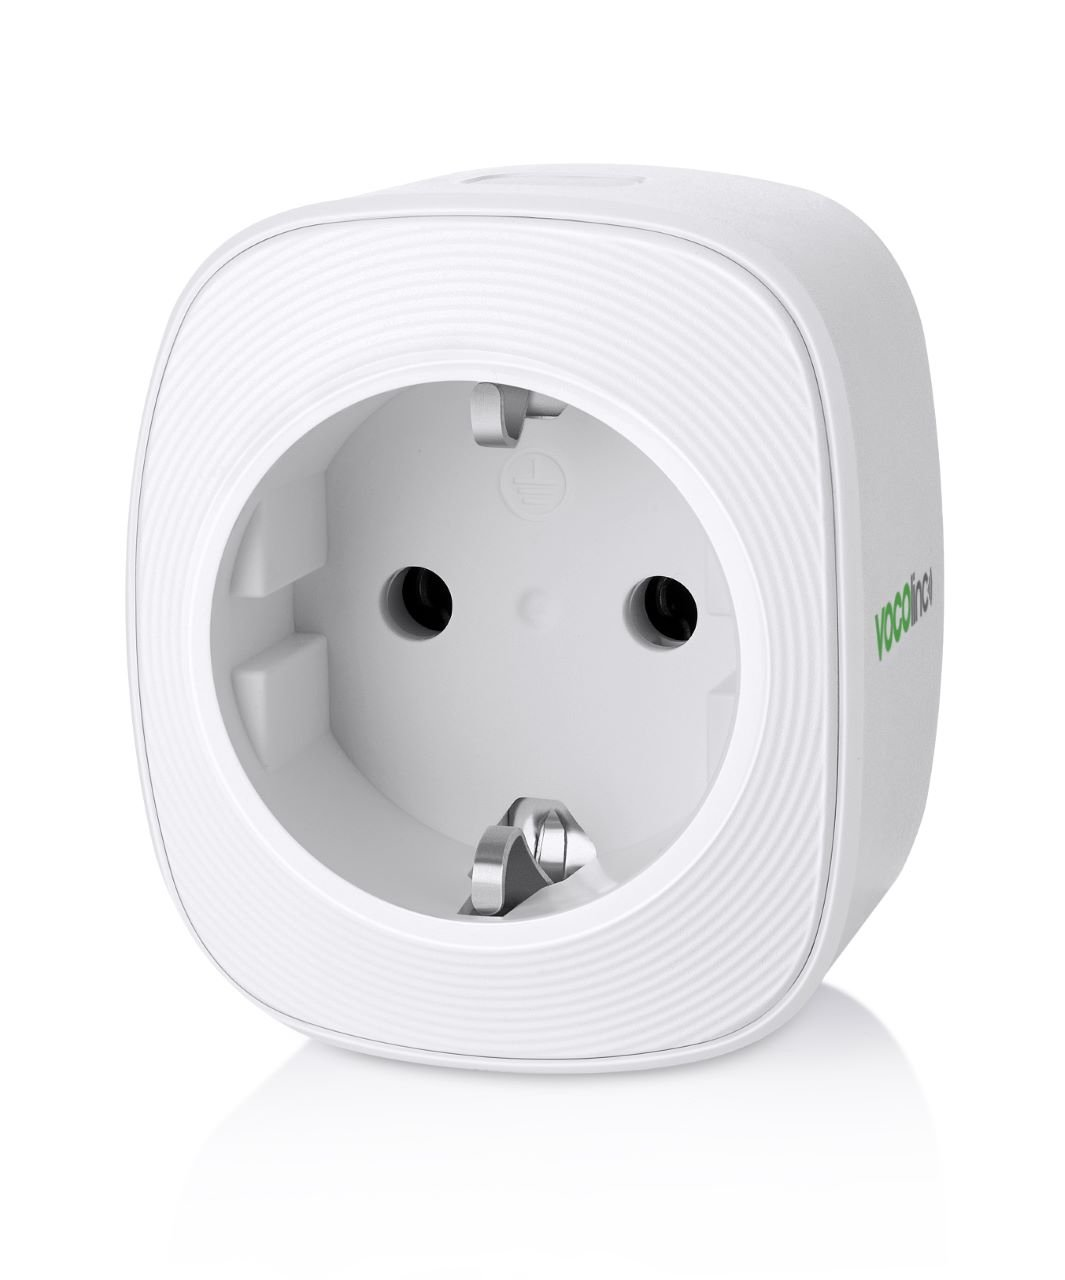 VOCOlinc Smart Wi-Fi Outlet Zweierpack VP3-2PK